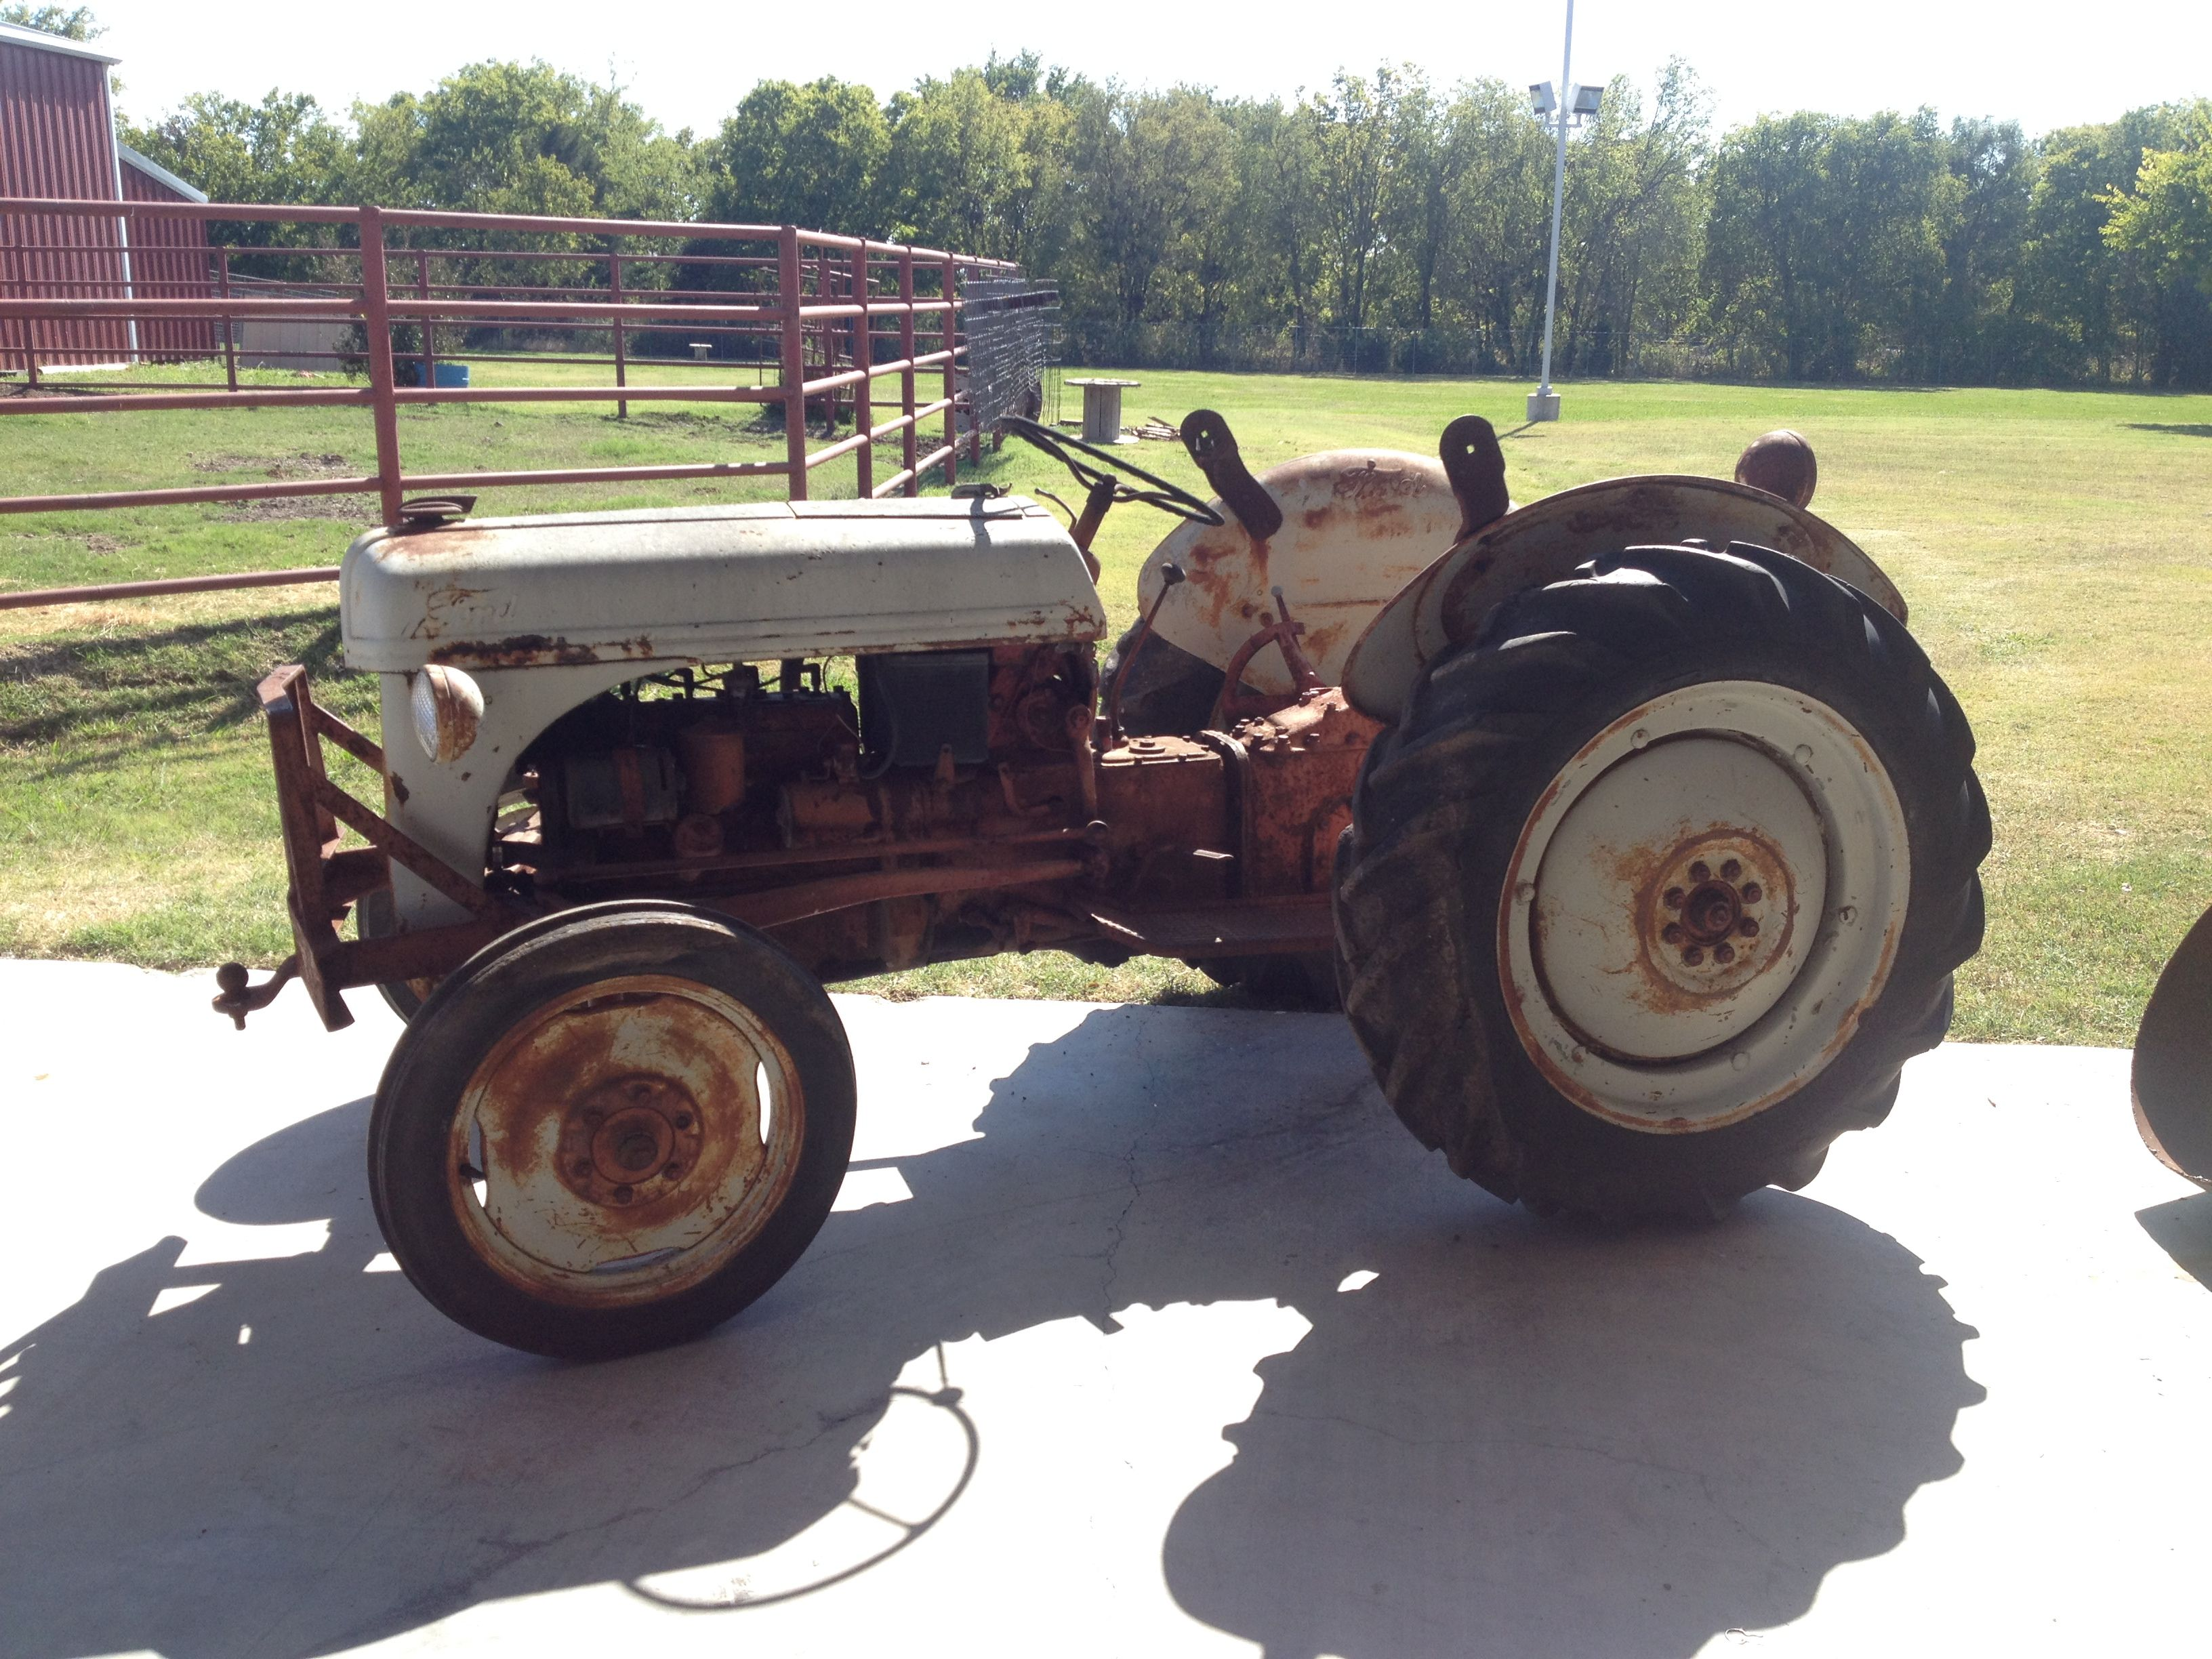 1951 8n Ford Tractor Before Ffa Ag Mech Students Restored It 8n Ford Tractor Tractors Ford Tractors